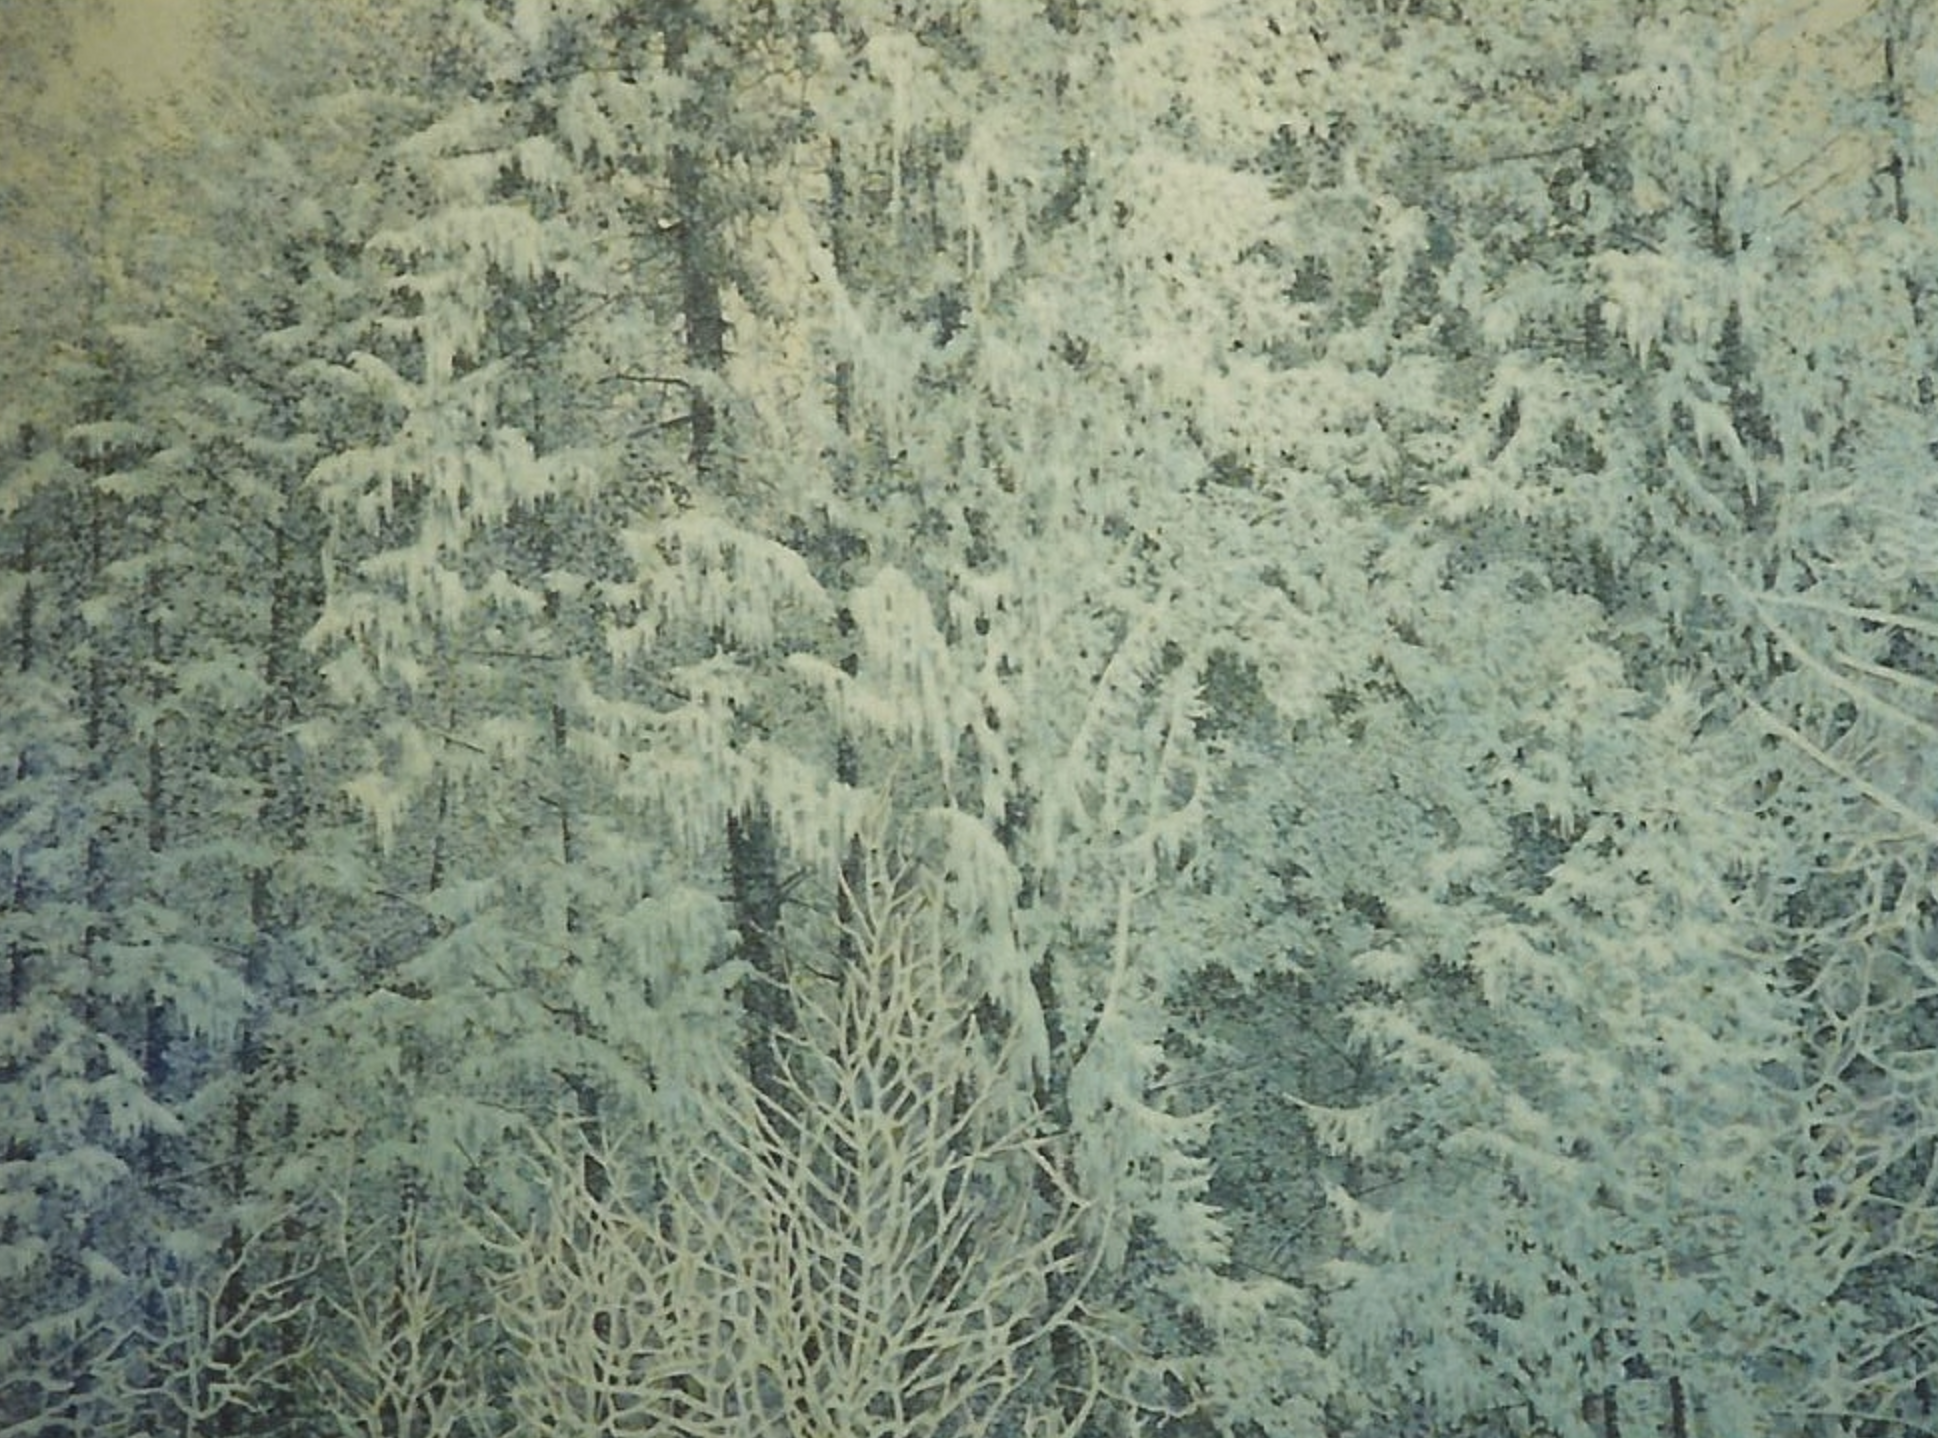 "silent snow - 1987, Acrylic on canvas, 30x40"" Private collection, Victoria, BC"